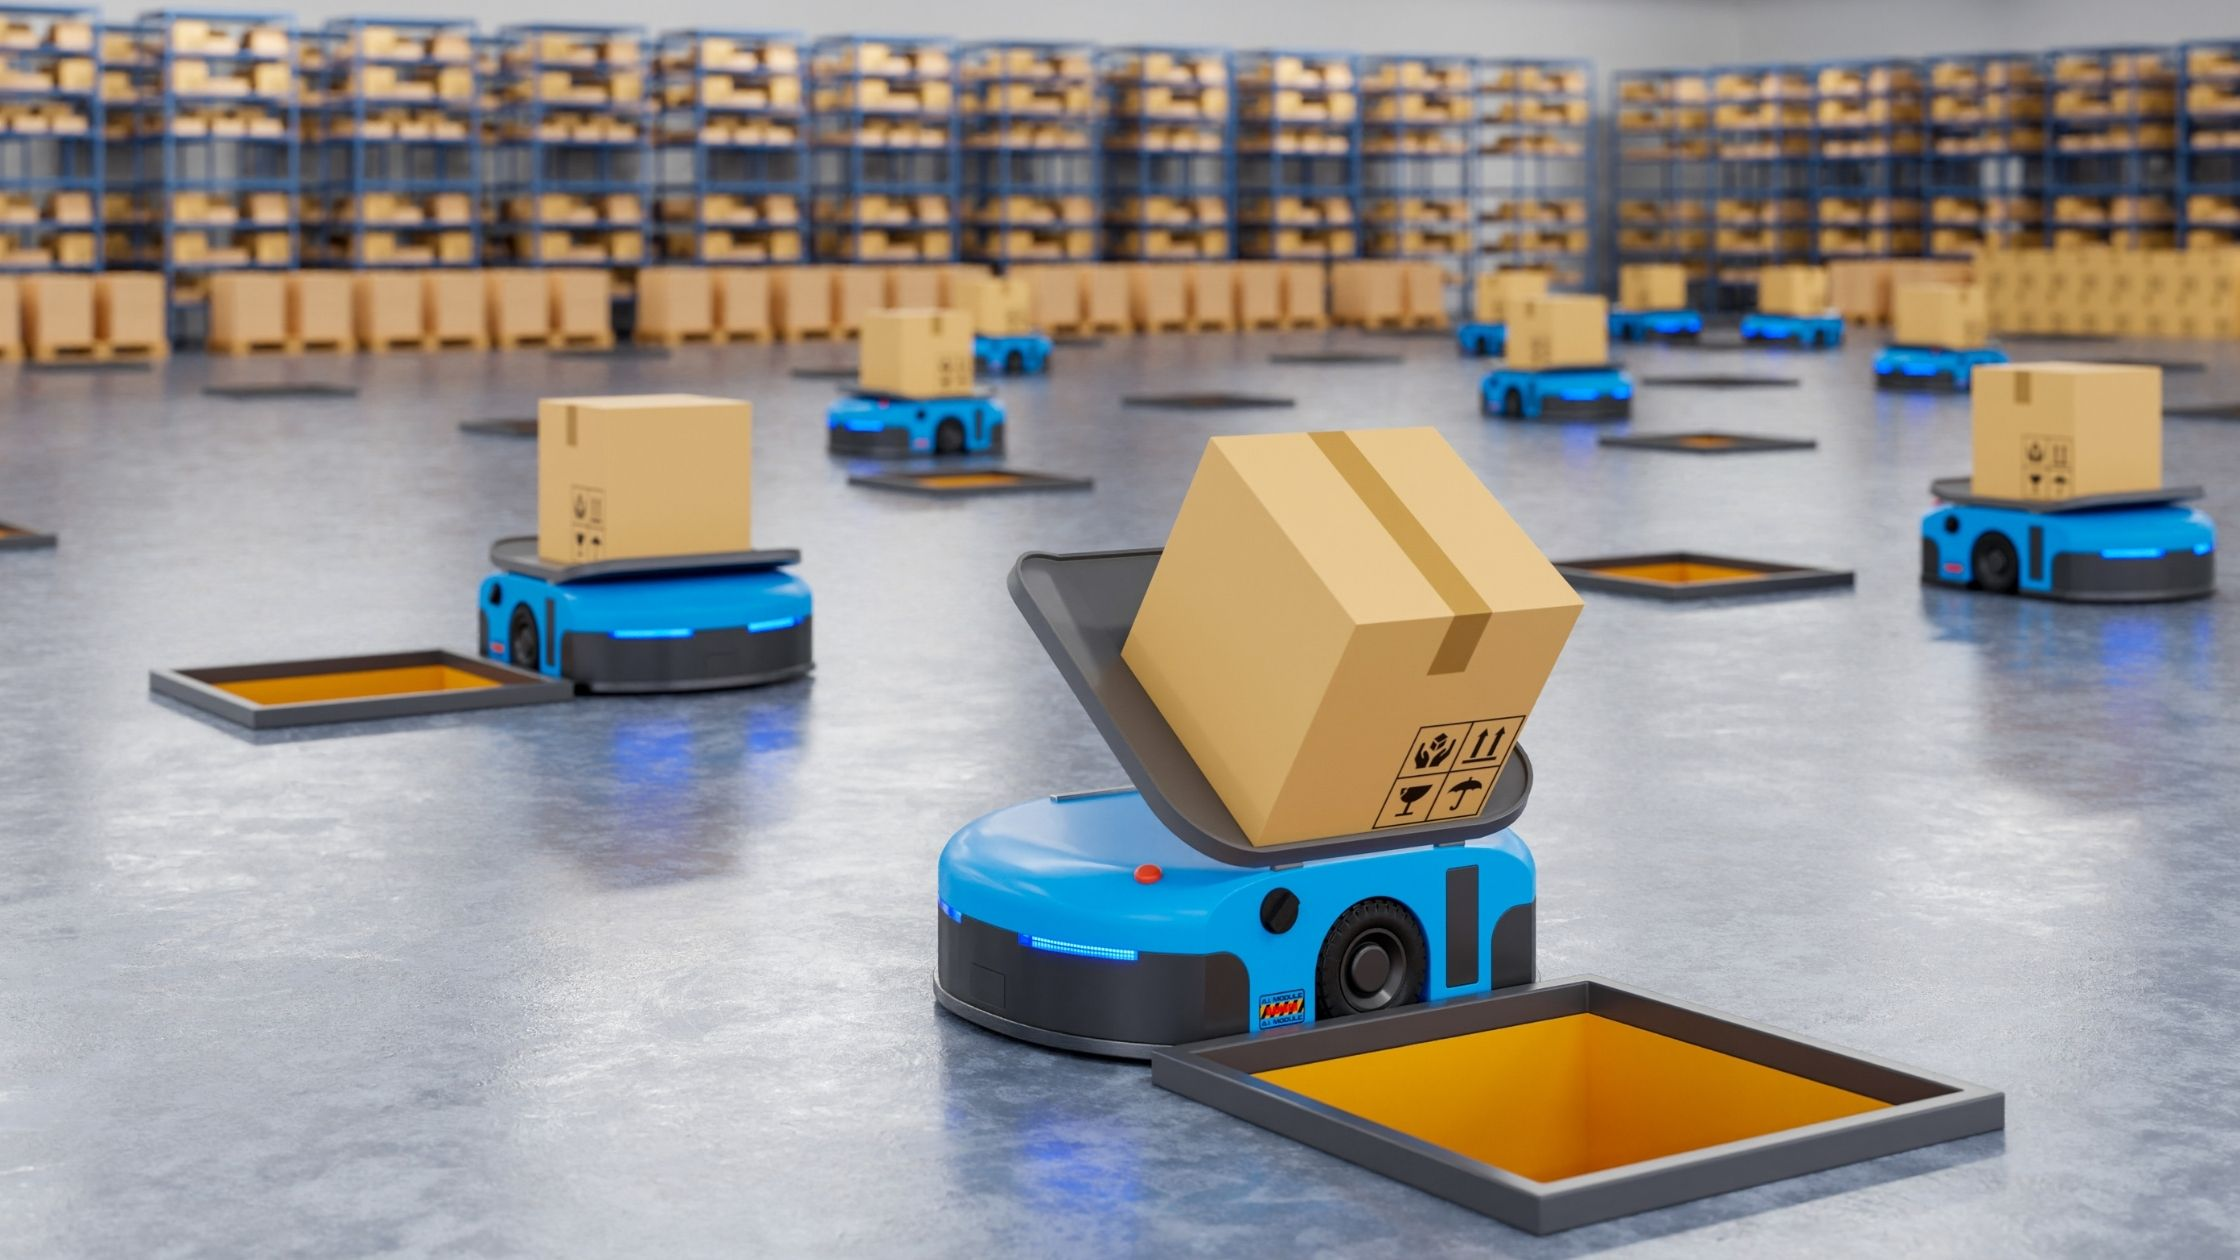 selling with 'Amazon FBA' image show a warehouse in 'Amazon' warehouse where robots select an send the packages in wholes so they will get on the right transportation bands